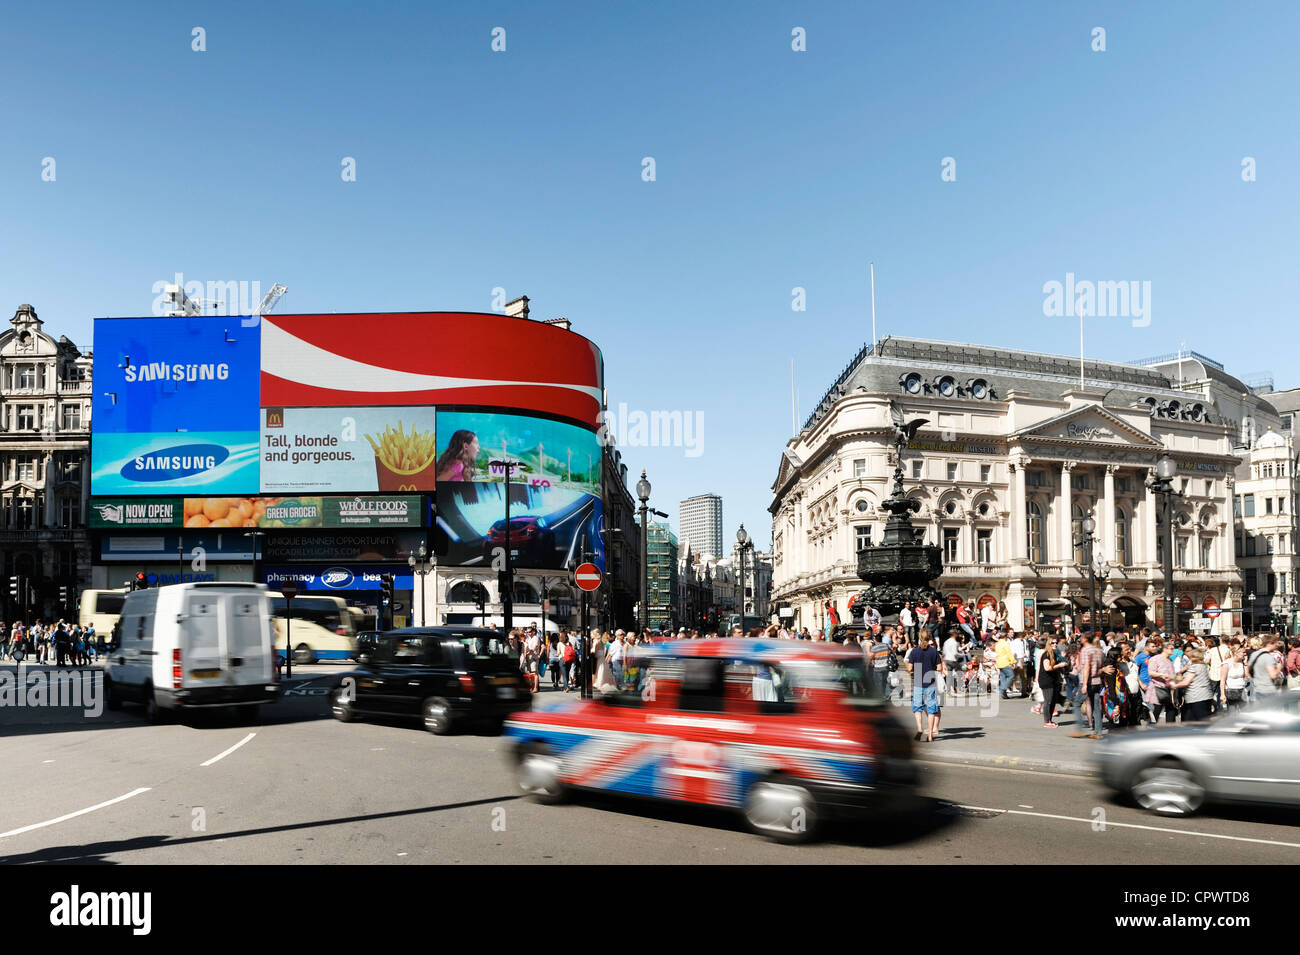 Crowds of tourists and traffic at Piccadilly Circus in central London - Stock Image